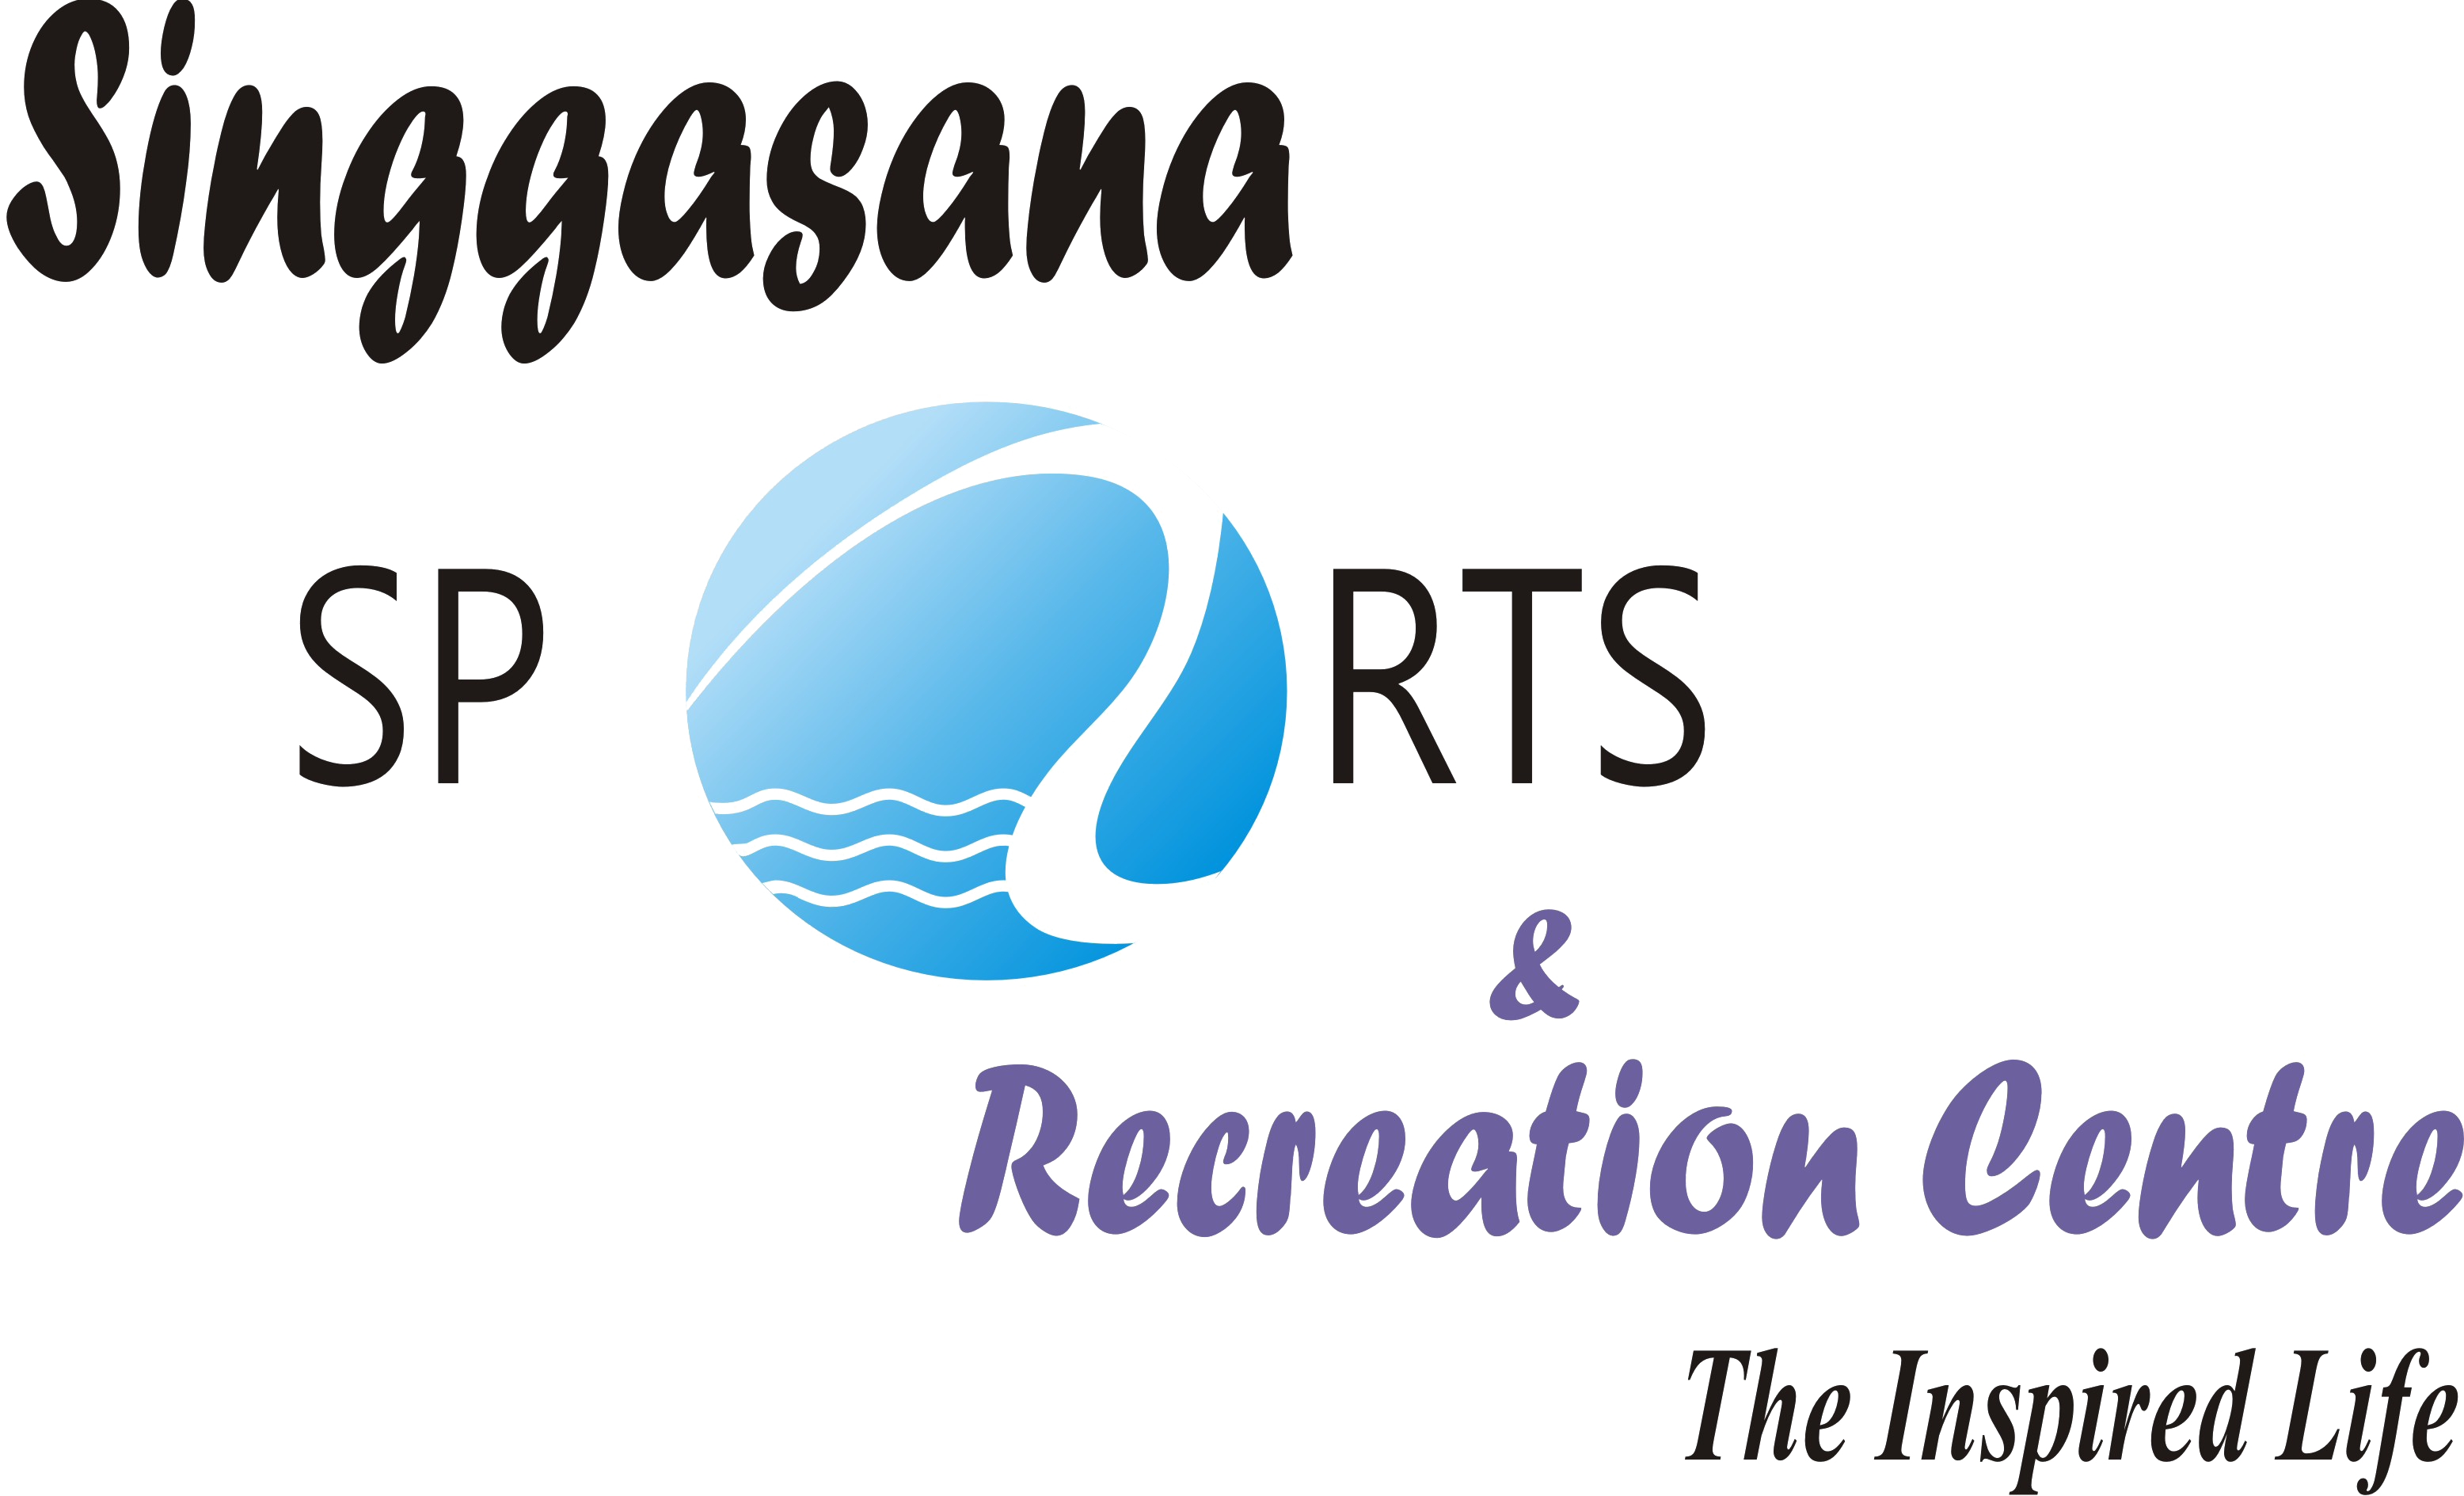 Singgasana Sports & Recreation Centre